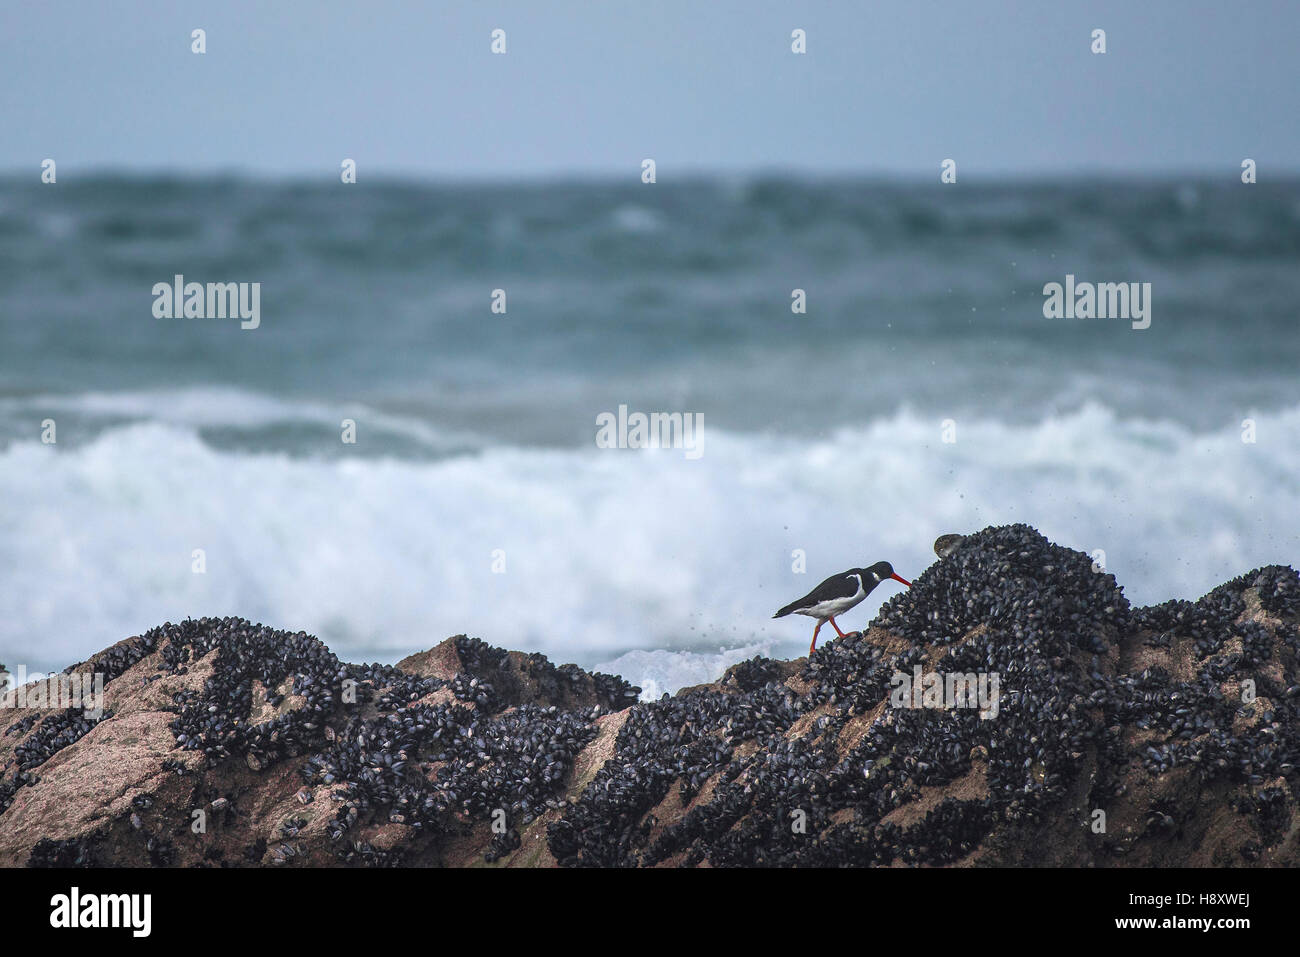 An Oystercatcher, Haematopodidae, feeding on mussels on a rock at Fistral Beach in Newquay, Cornwall. - Stock Image